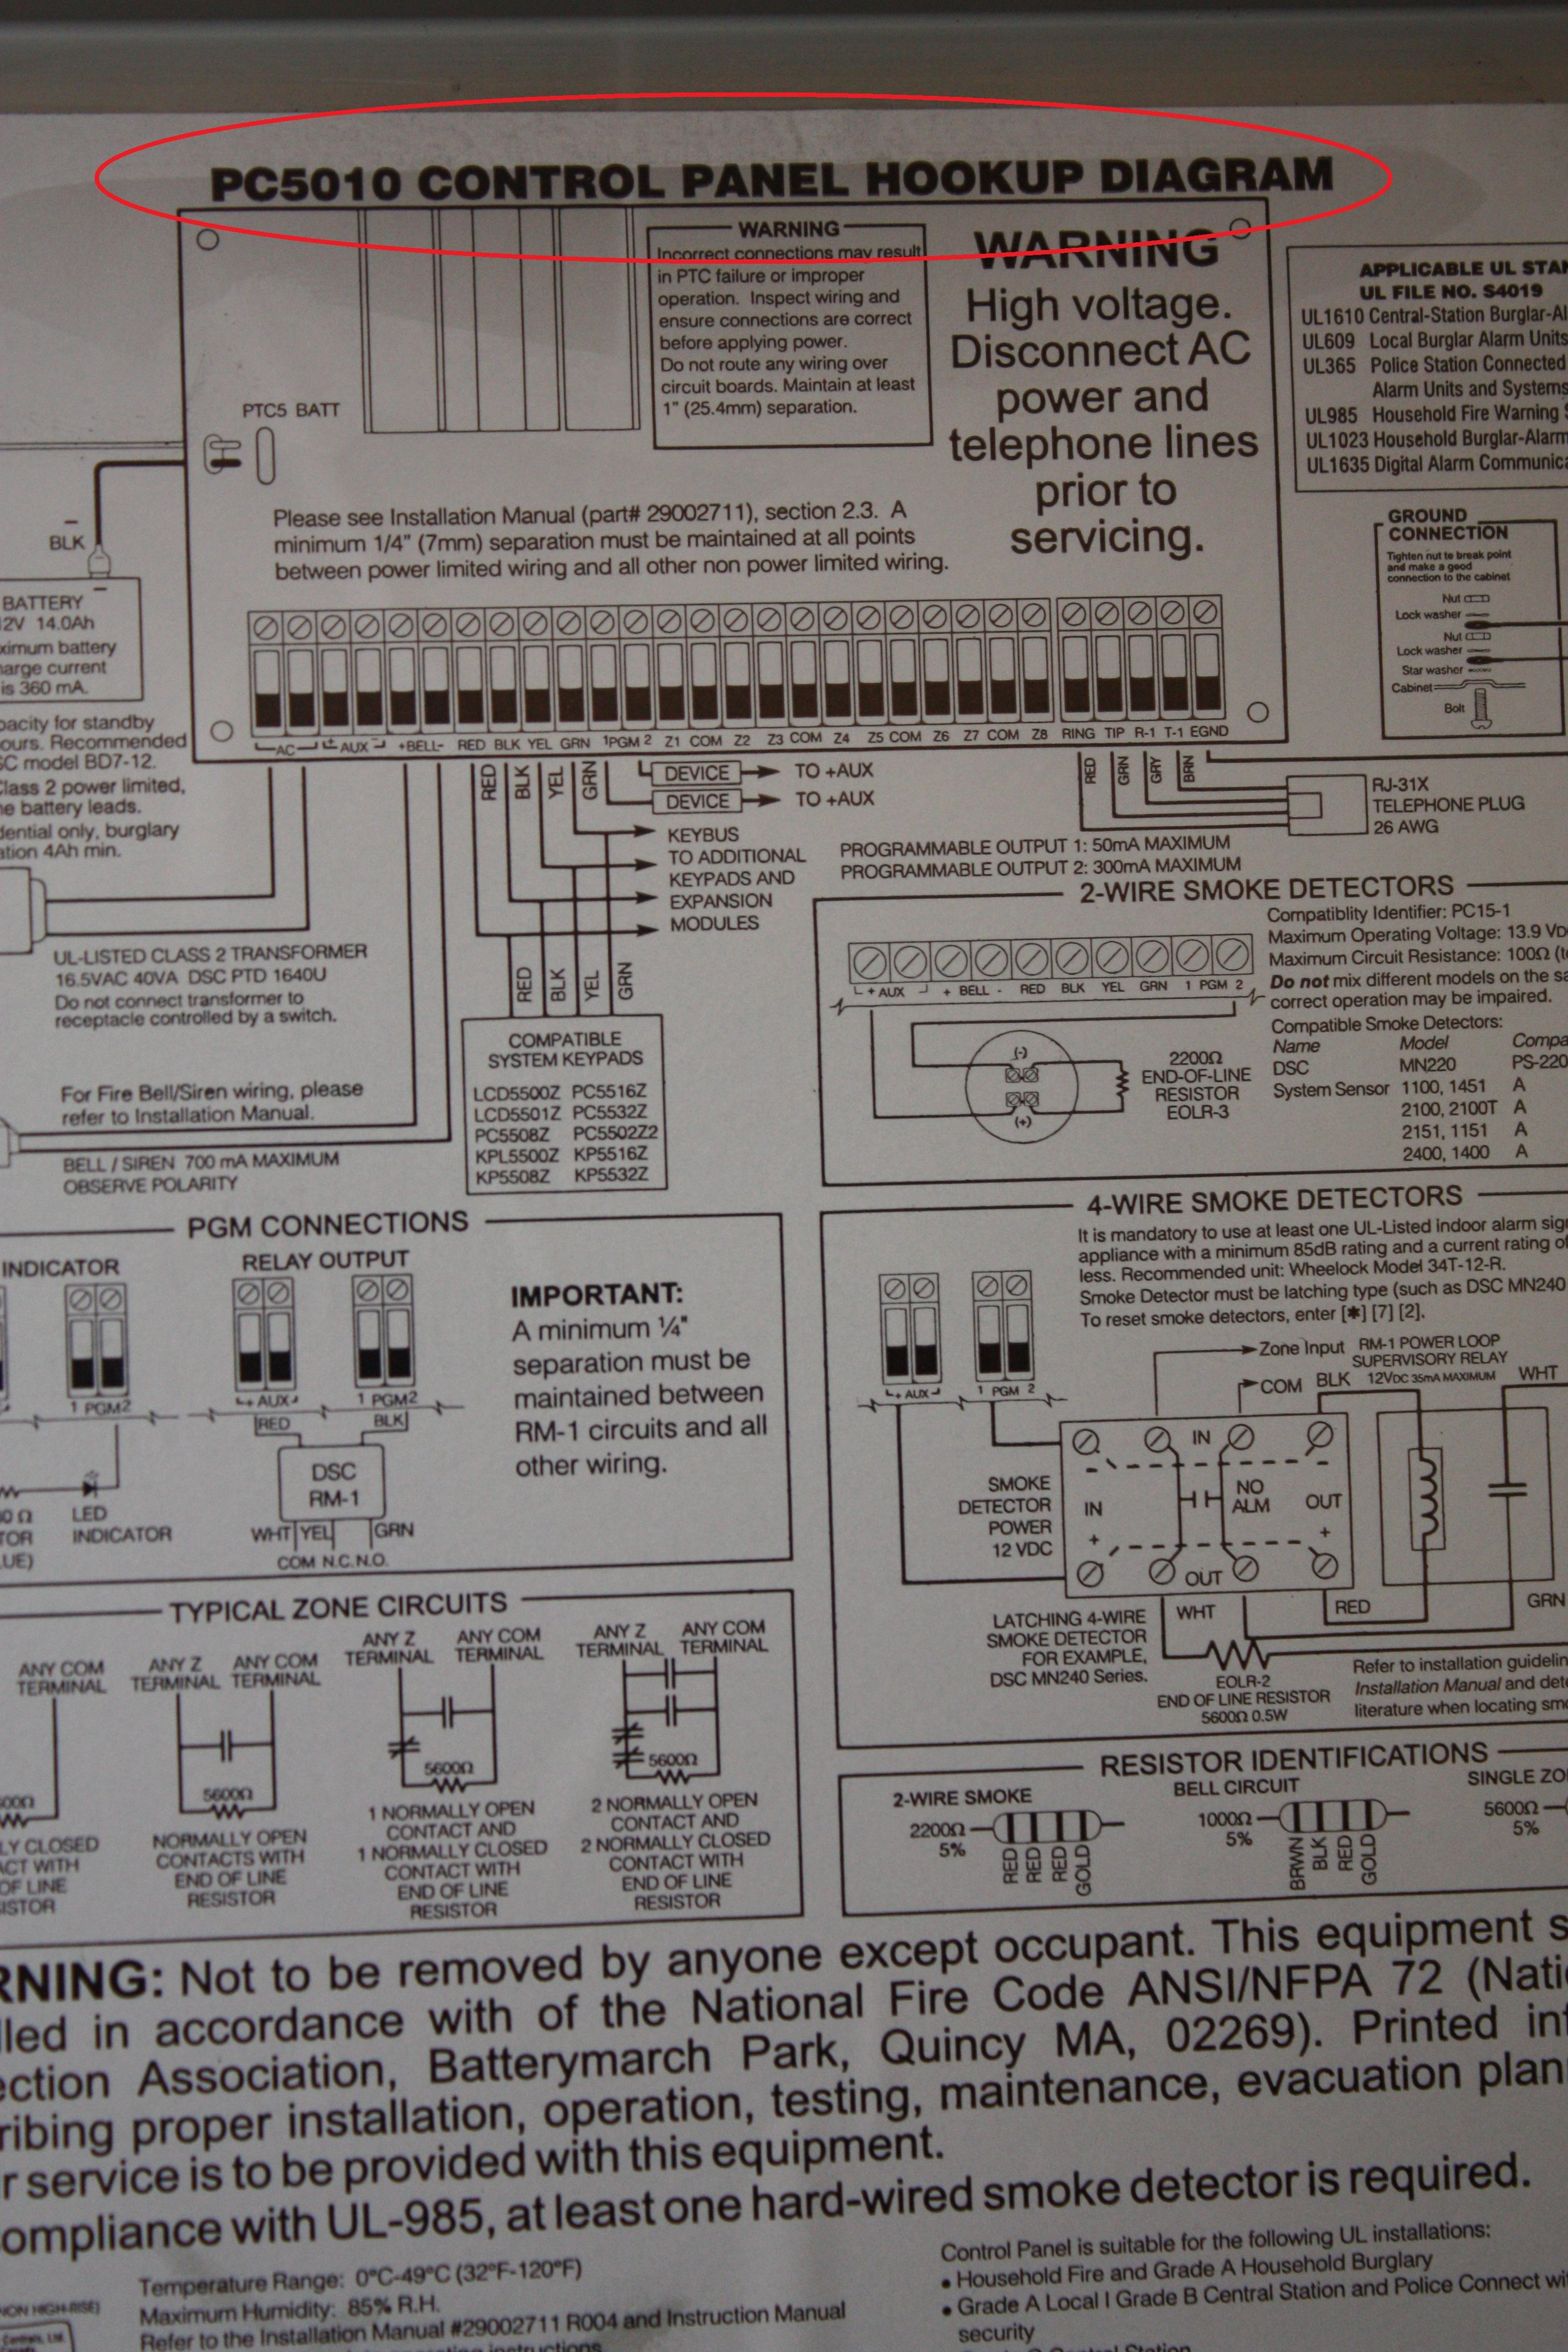 Control panel hookup diagram for the 5500 DSC Custom Alpha alarm system displaying the serial number location - NCA Alarms Nashville TN